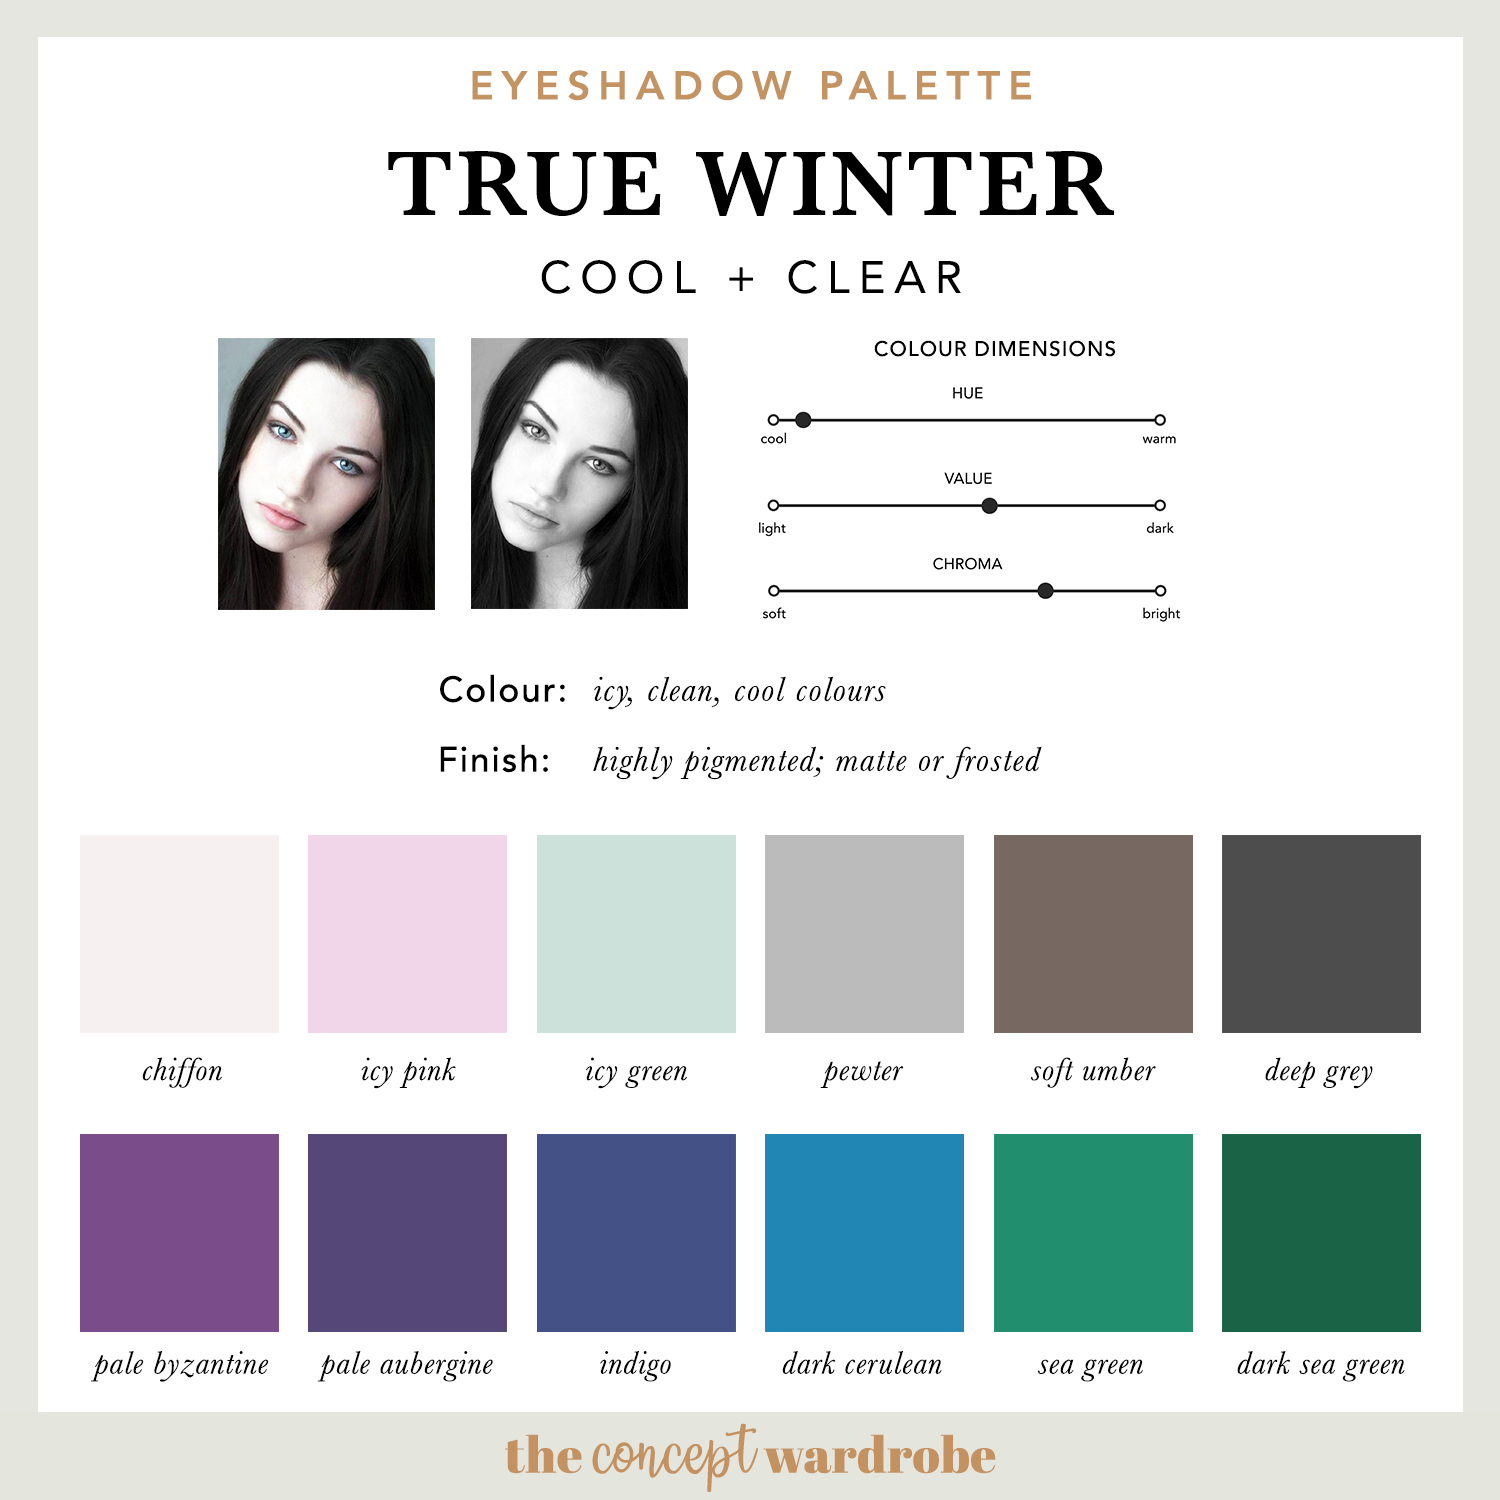 TRUE WINTER | Eyeshadow Palette